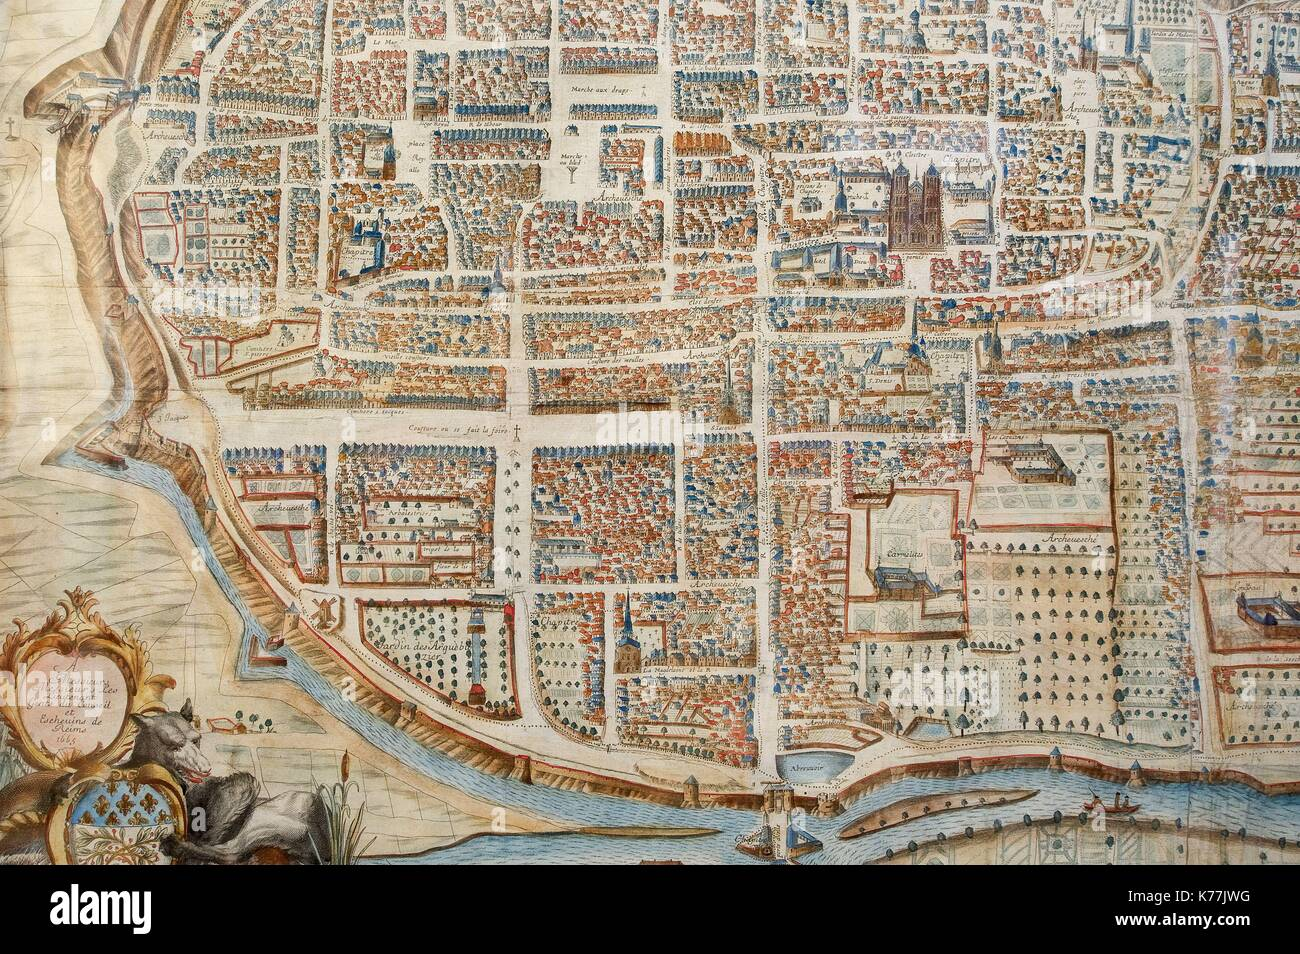 France, Marne, Reims, 17th century old reims map Stock Photo ...